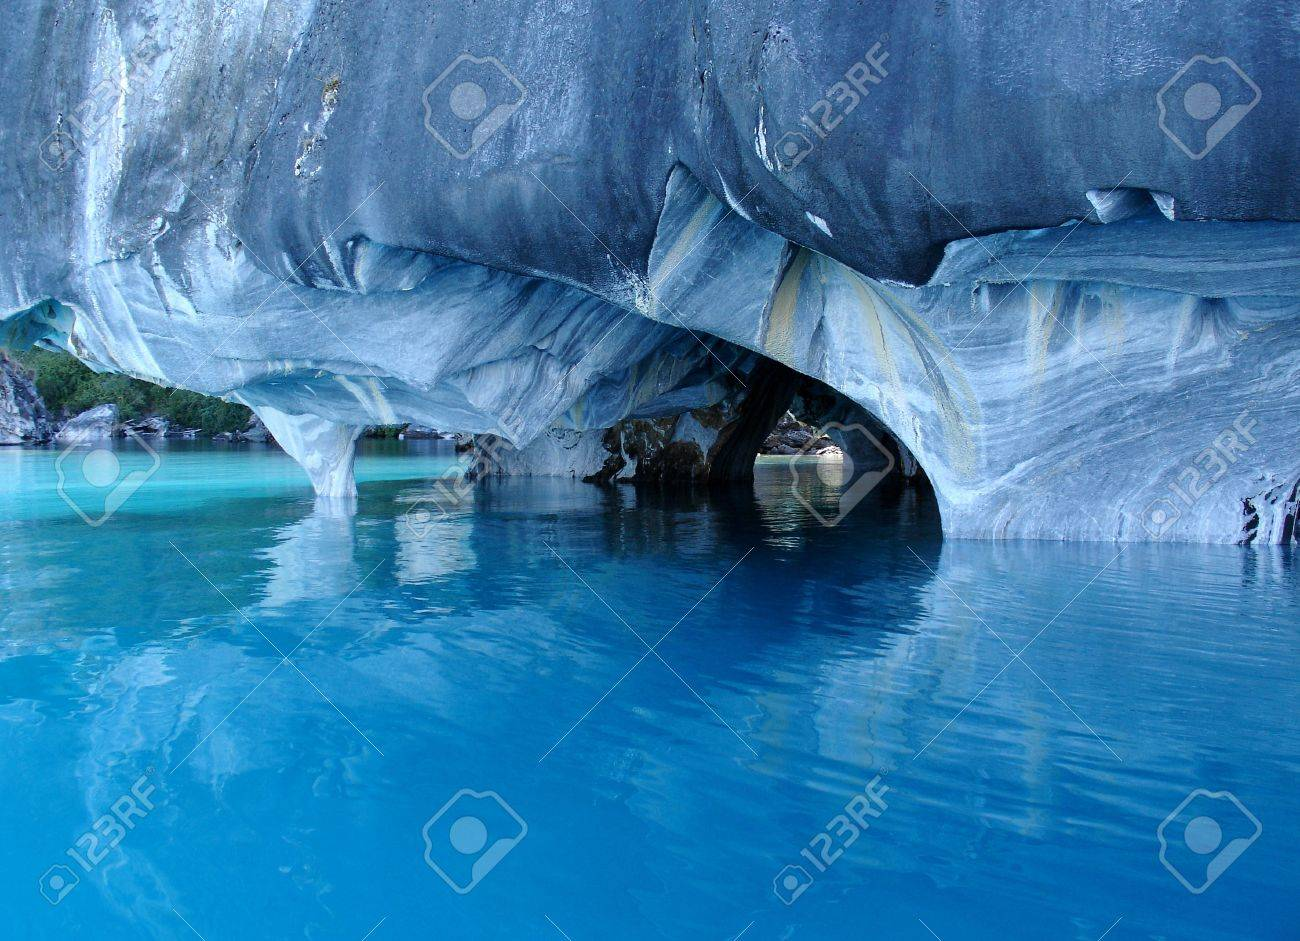 Marble Caves General Carrera Lake Chile Stock Photo Picture And Royalty Free Image Image 20327059